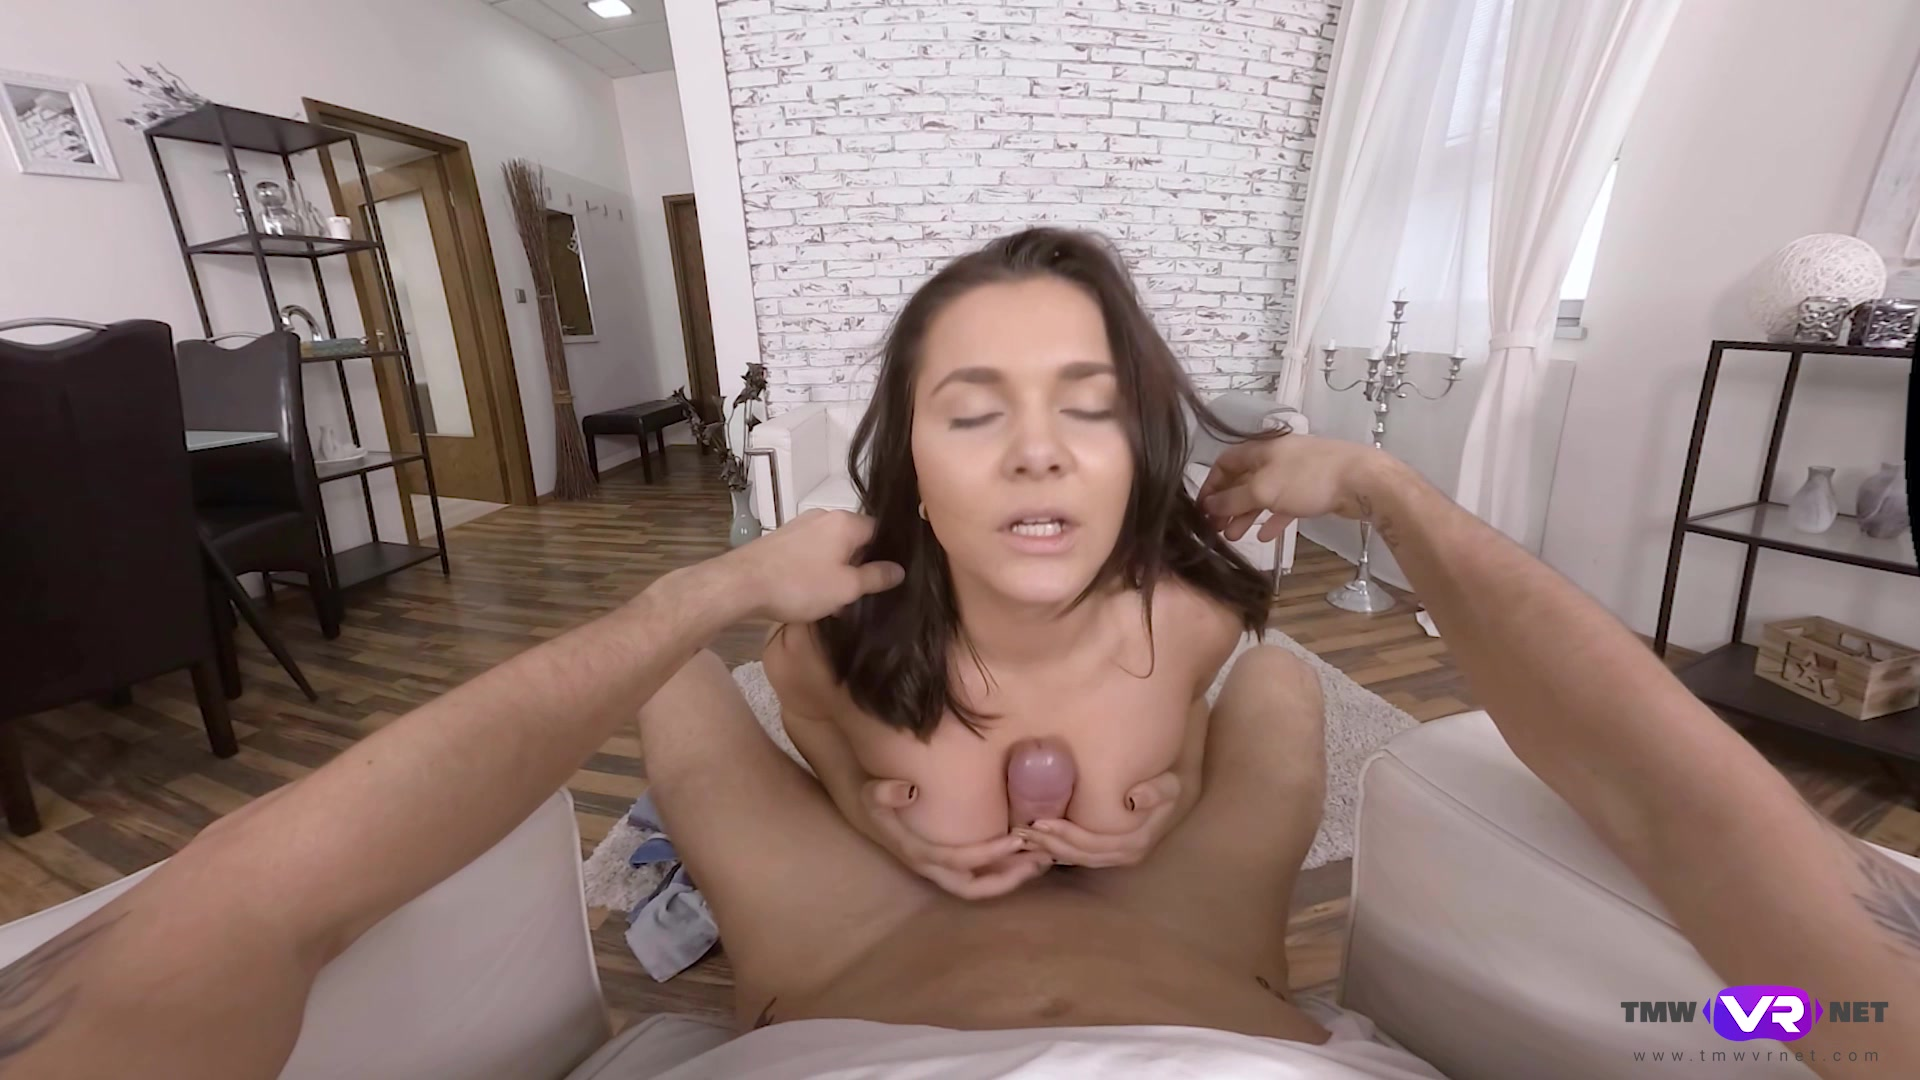 After dick eating Naughty Bee can't wait to jump on a hard penis